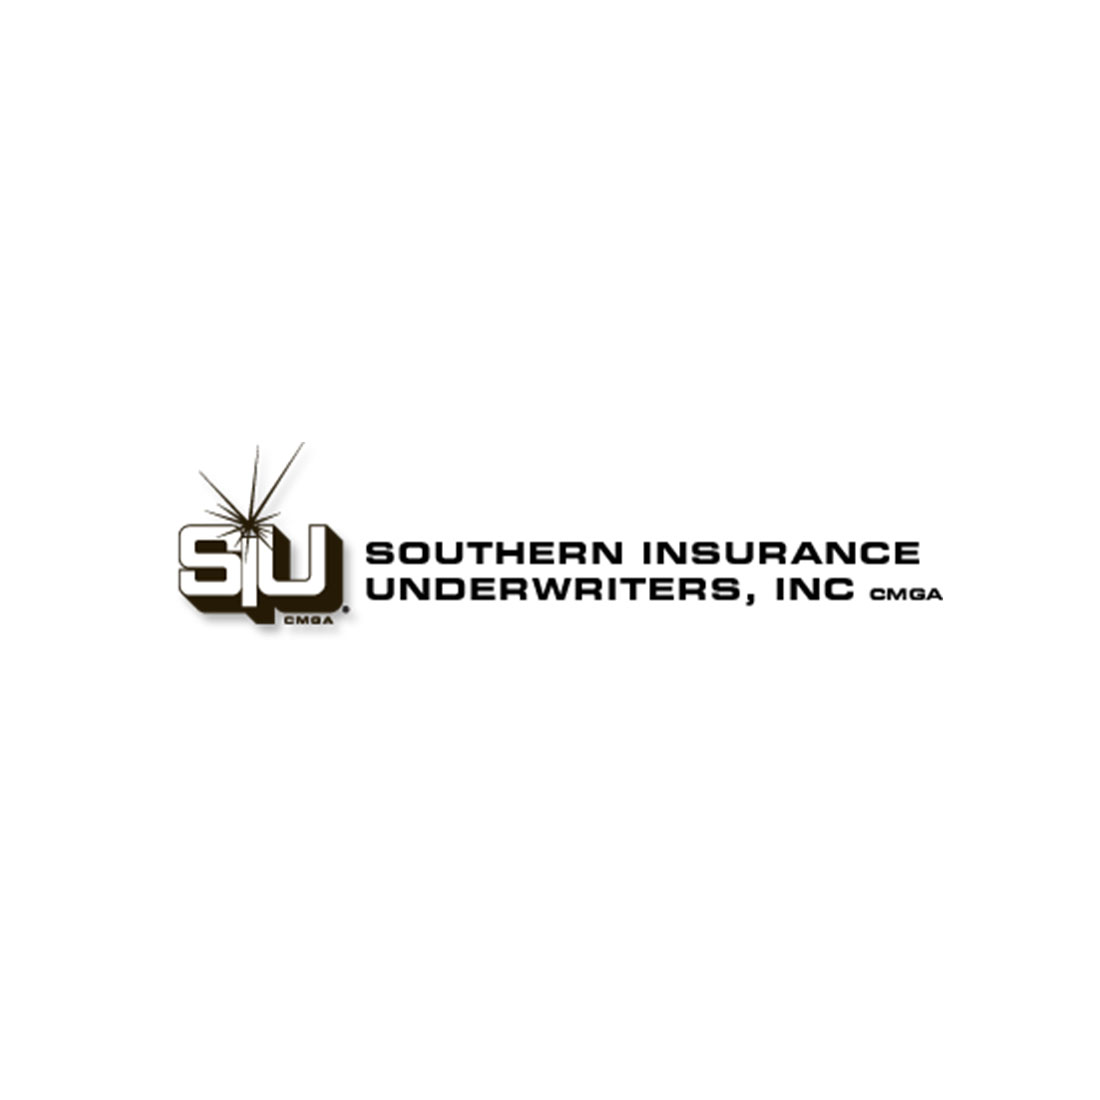 Southern Insurance Underwriters, Inc.